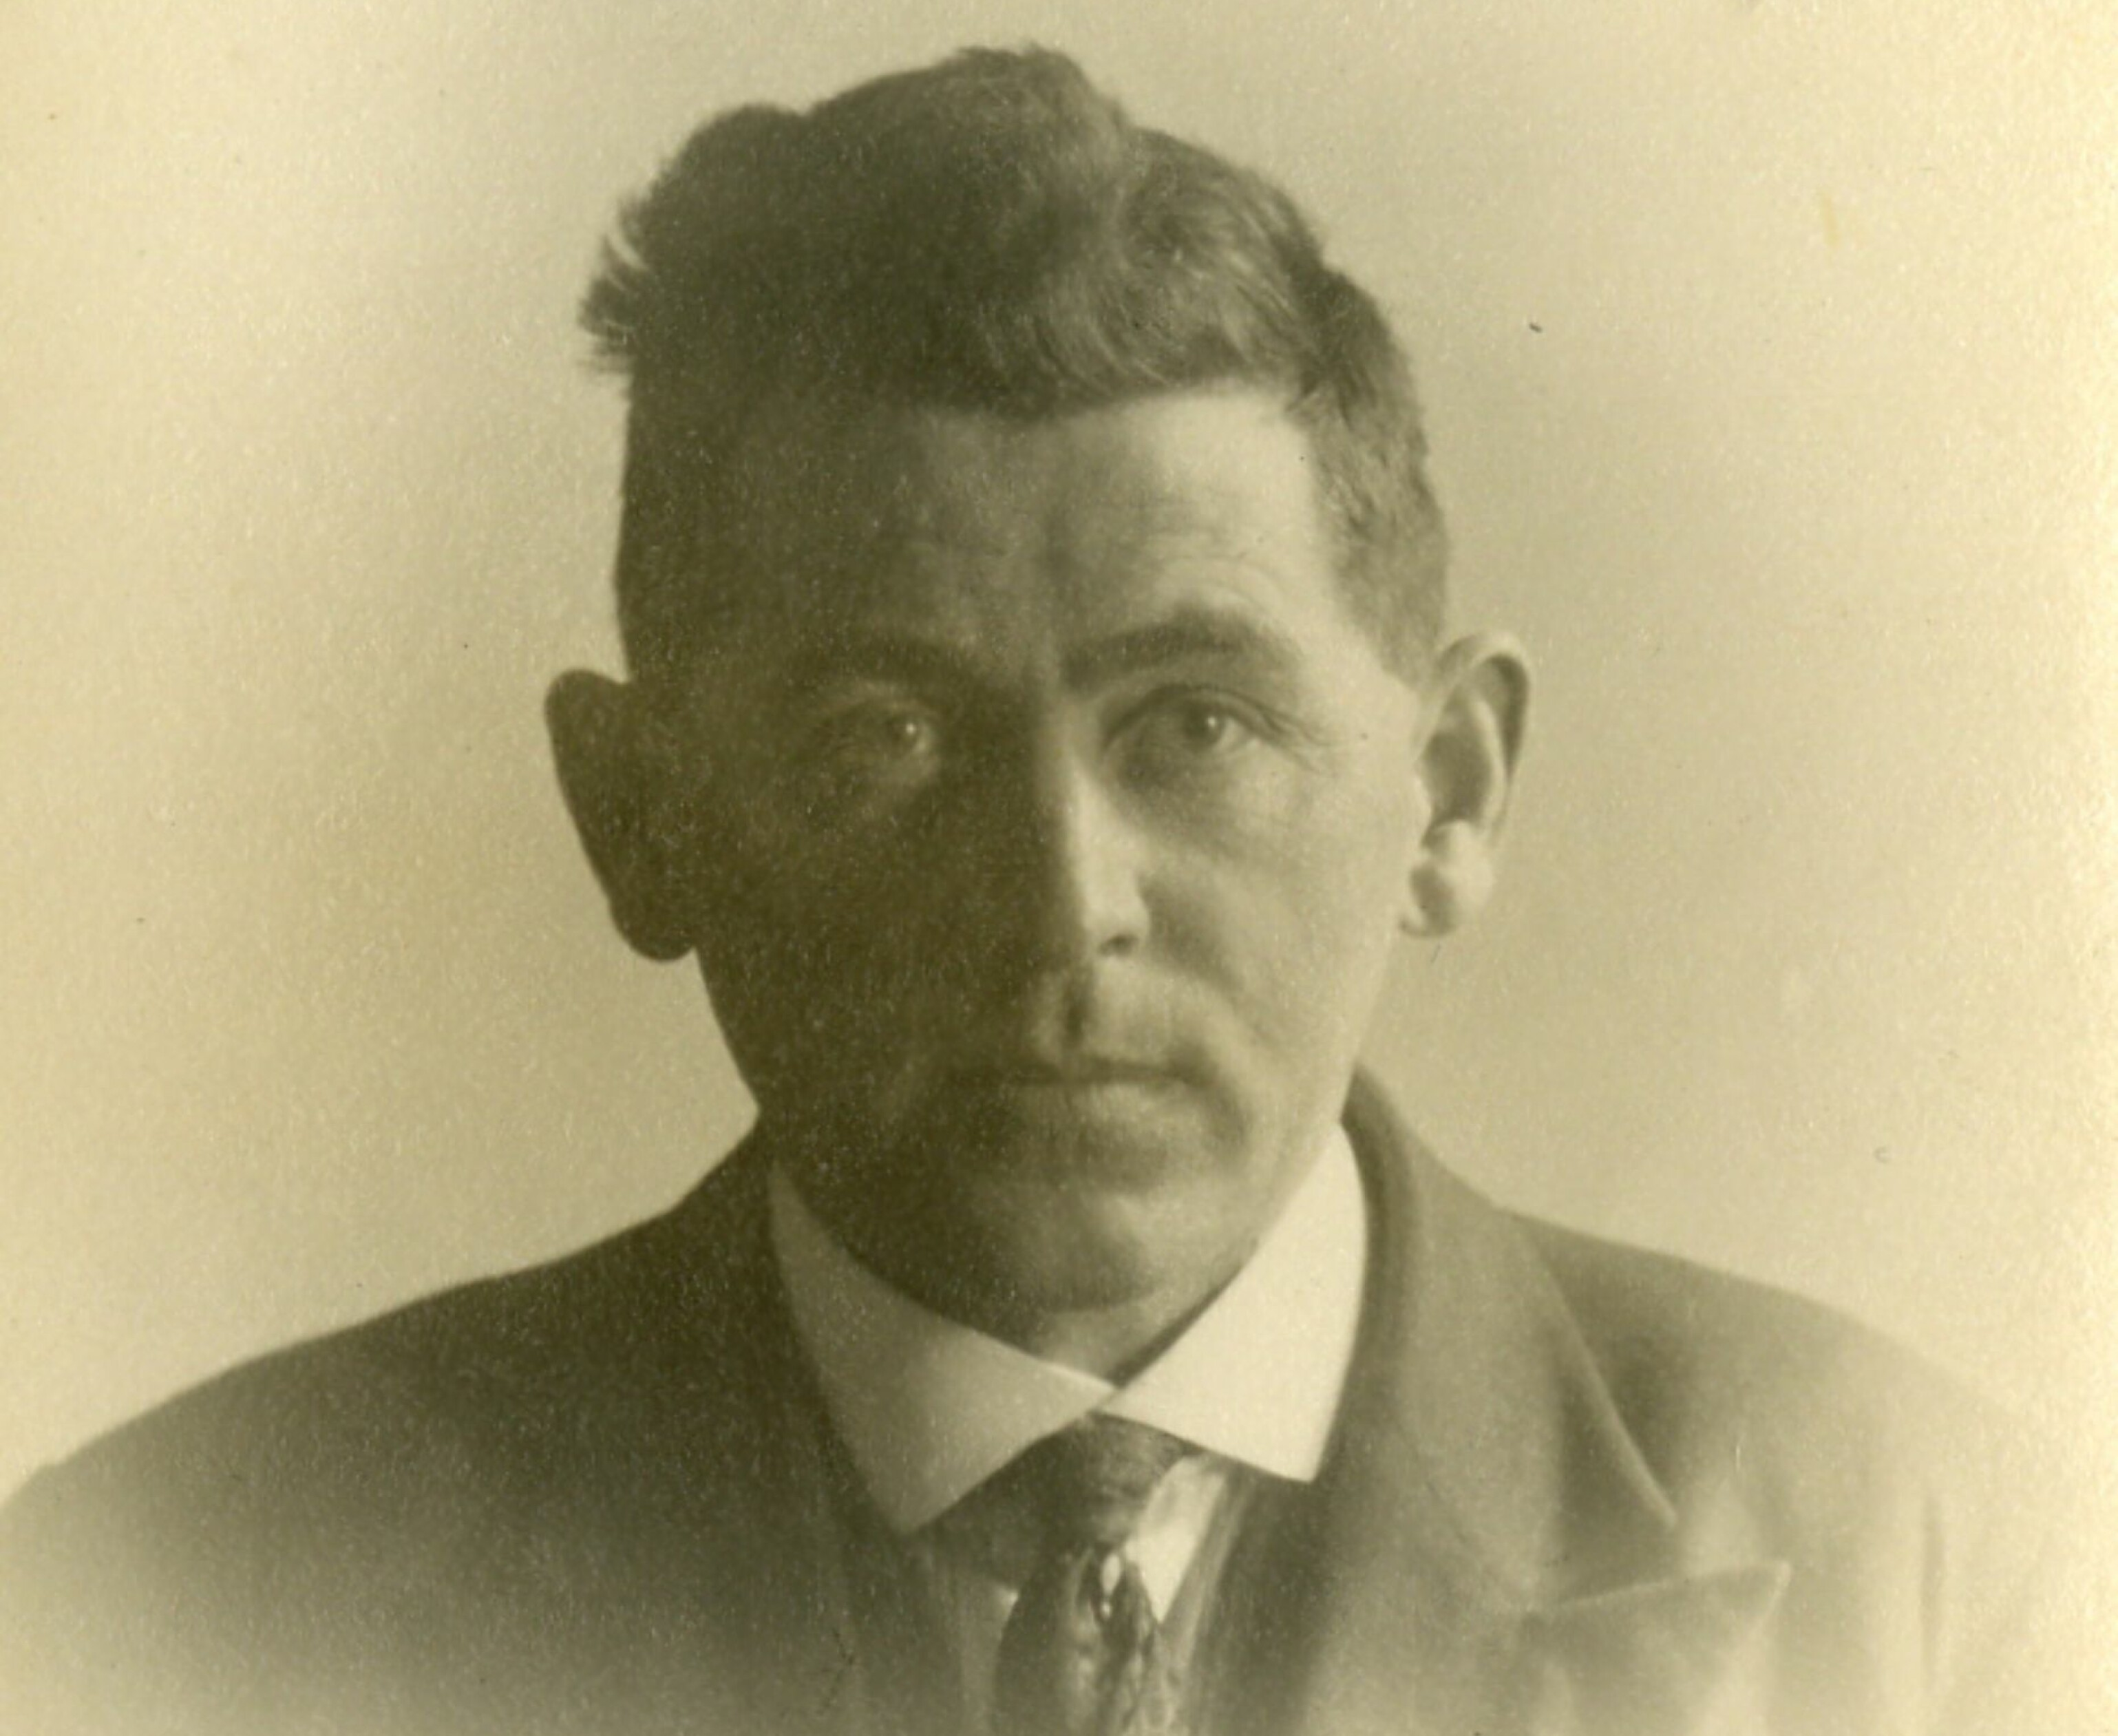 Anders J. Smedsvik. Date unknown. Photo: Private